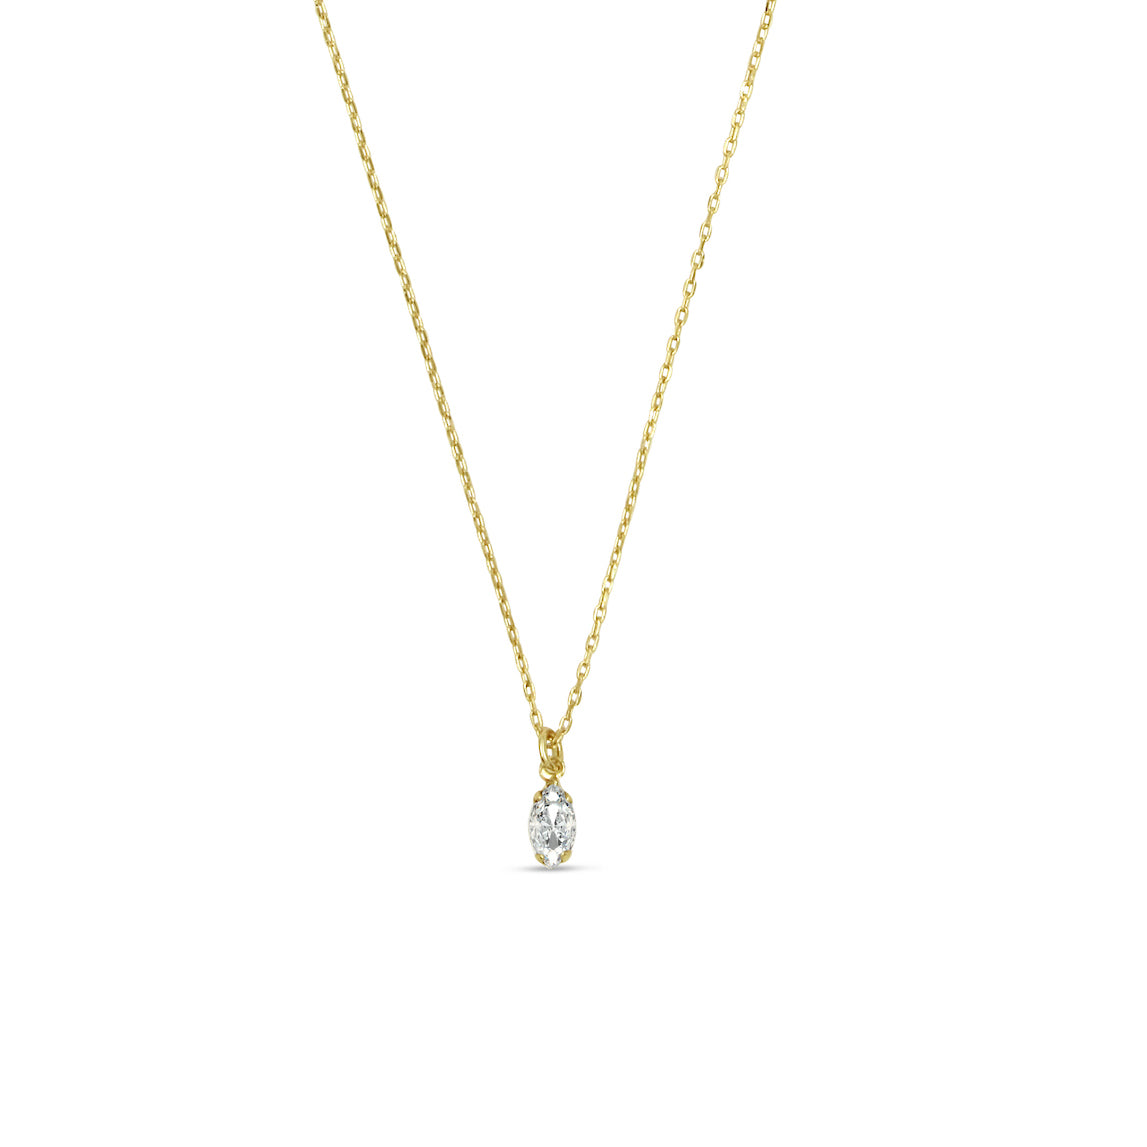 Tiny Marquis Necklace - Bing Bang Jewelry NYC